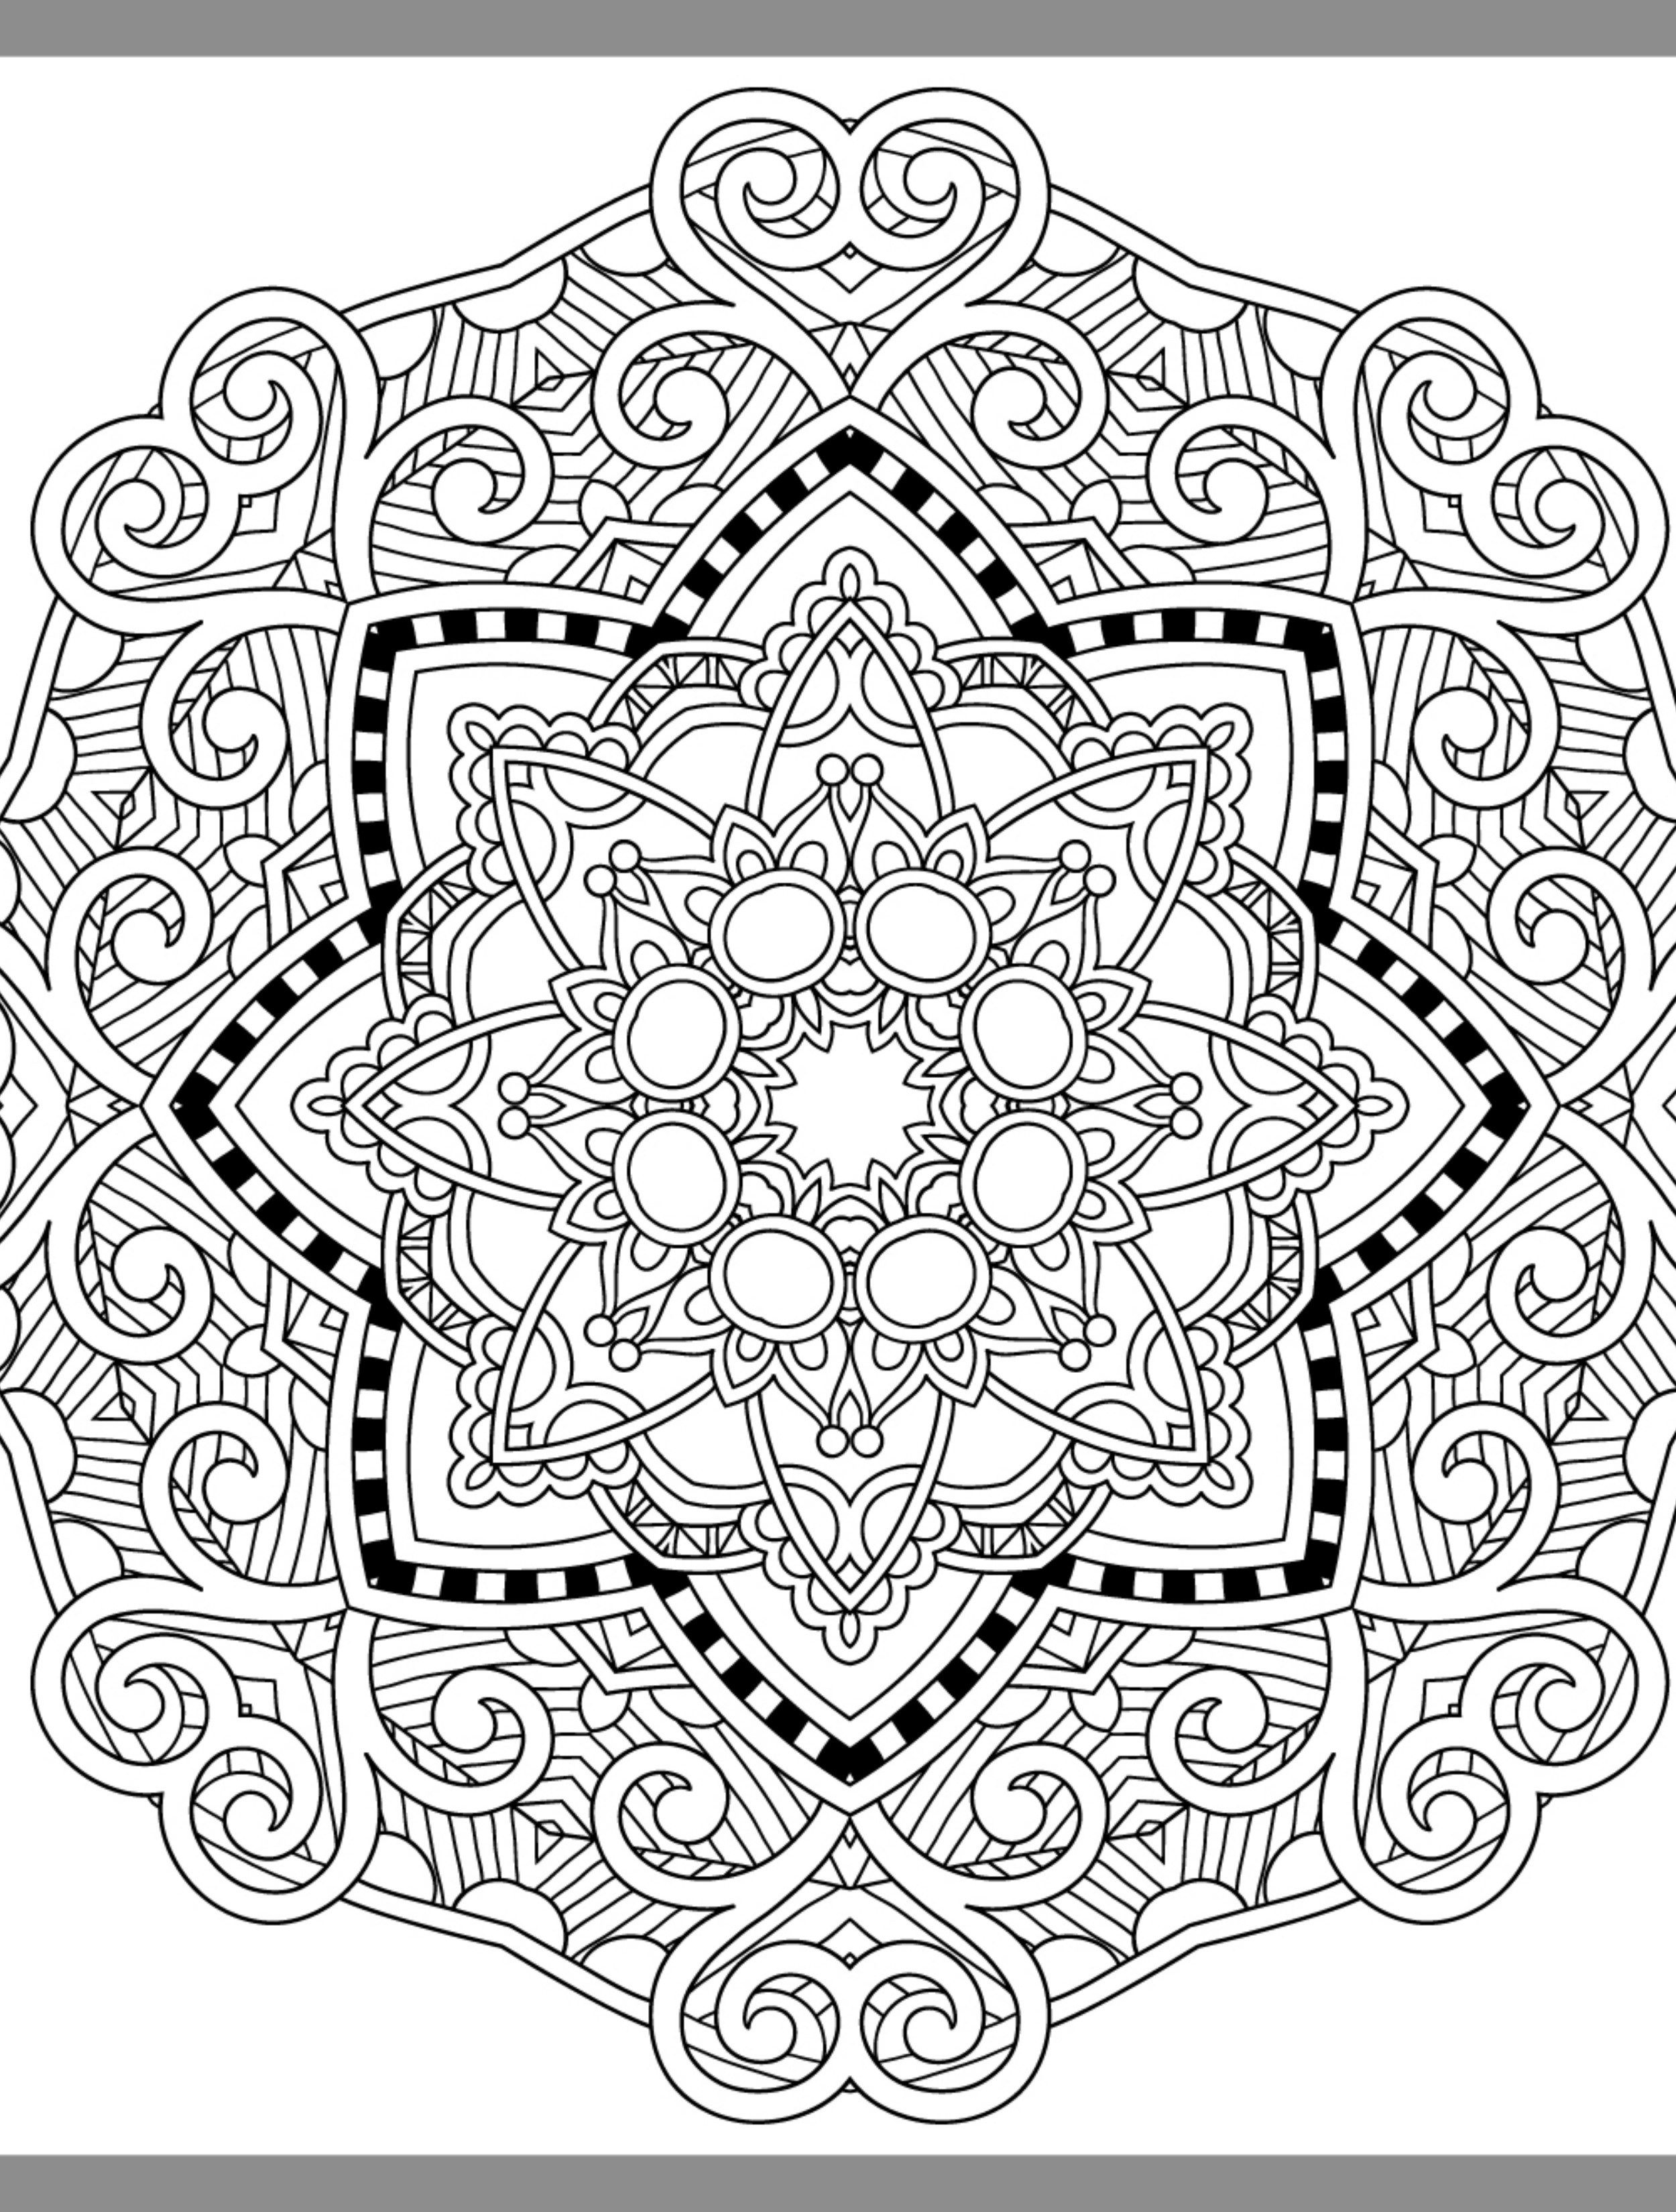 24 More Free Printable Adult Coloring Pages | Mandala ... | free printable mandala coloring pages for adults only